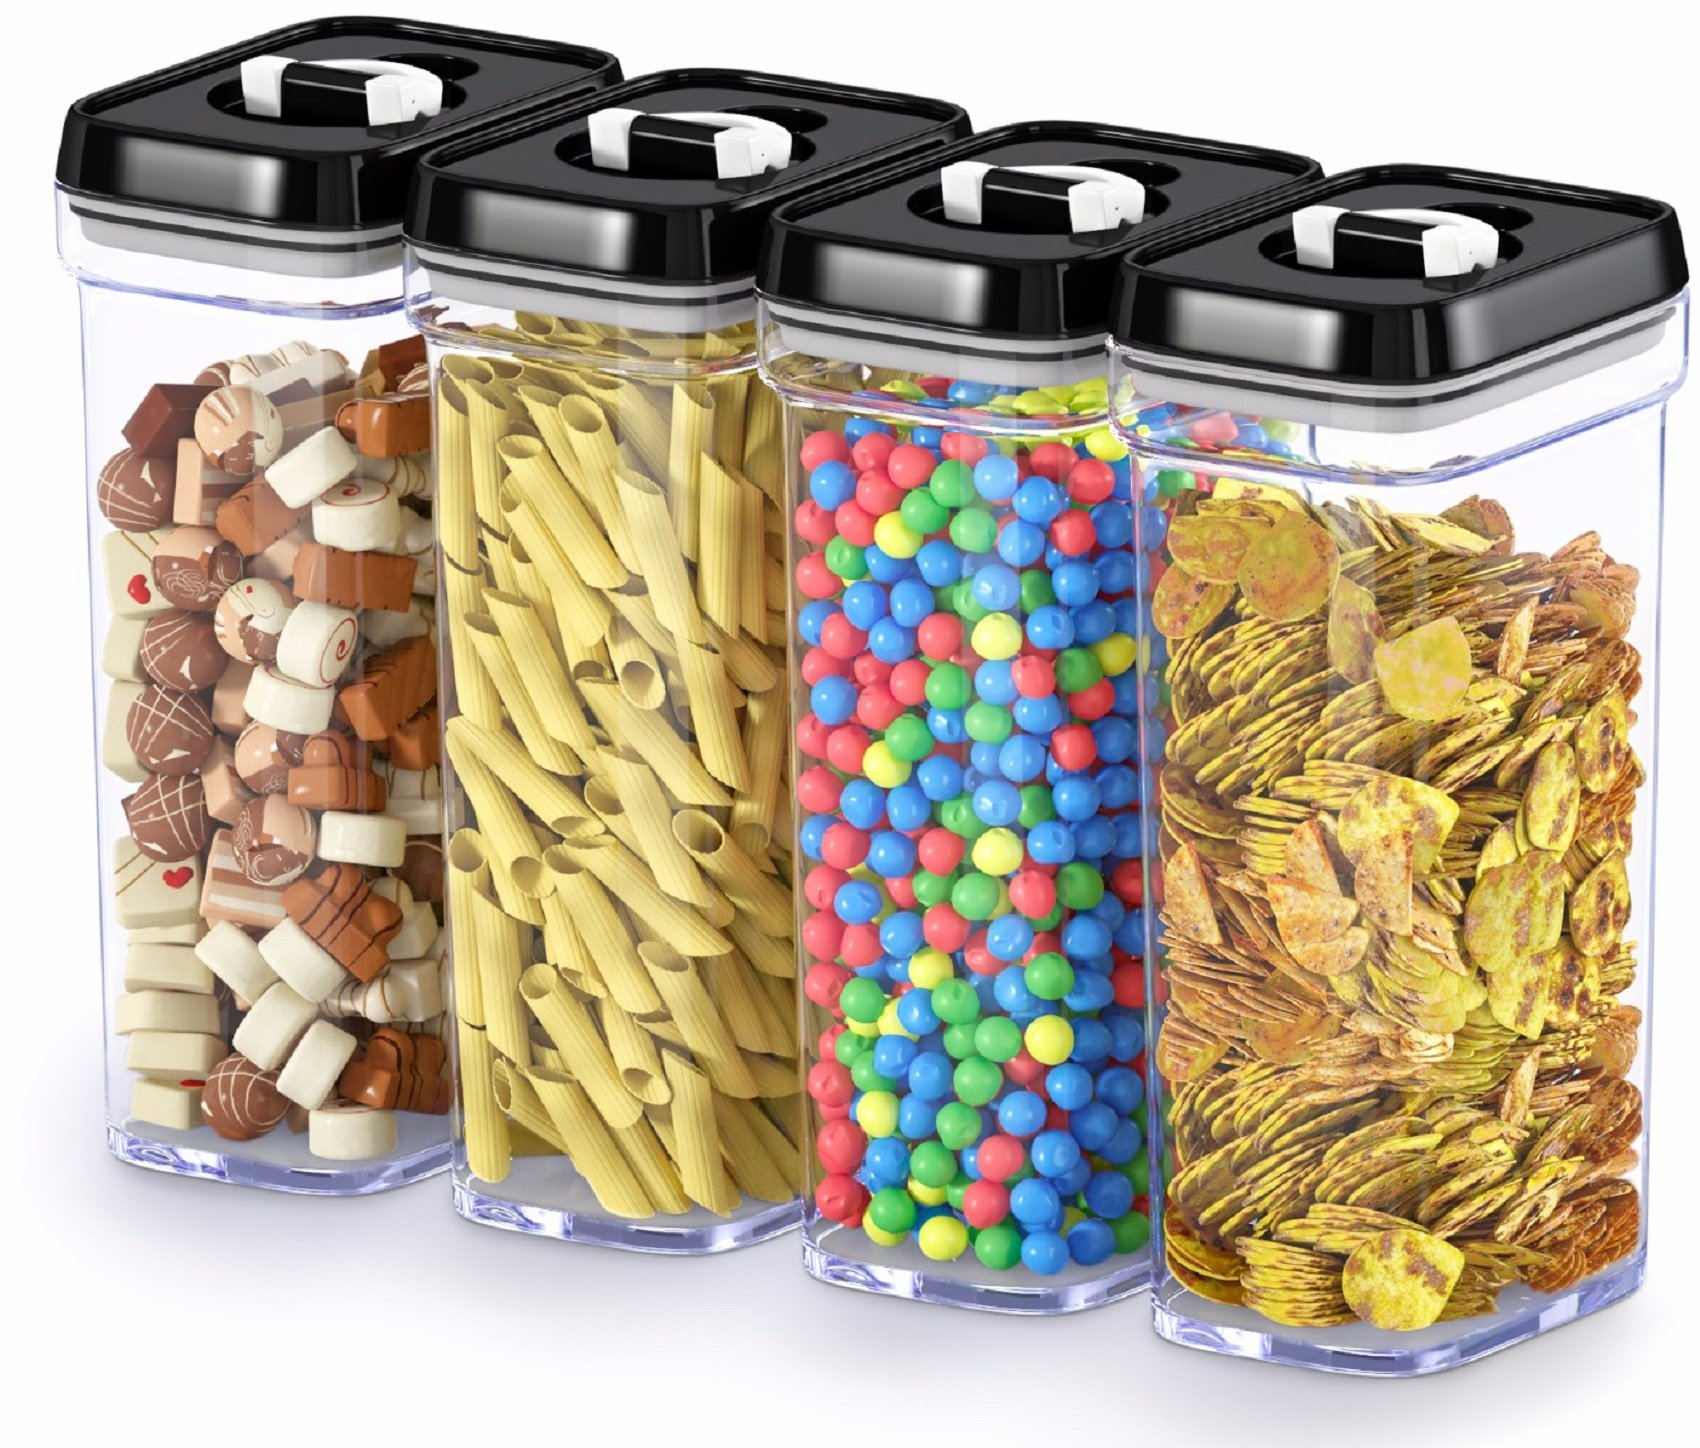 DWËLLZA KITCHEN Airtight Food Storage Containers with Lids - 4 Piece Set/All Same Size - Medium Air Tight Clear Plastic Pantry & Kitchen Container for Chips & Snacks BPA-Free - Keeps Food Fresh & Dry by DWËLLZA KITCHEN